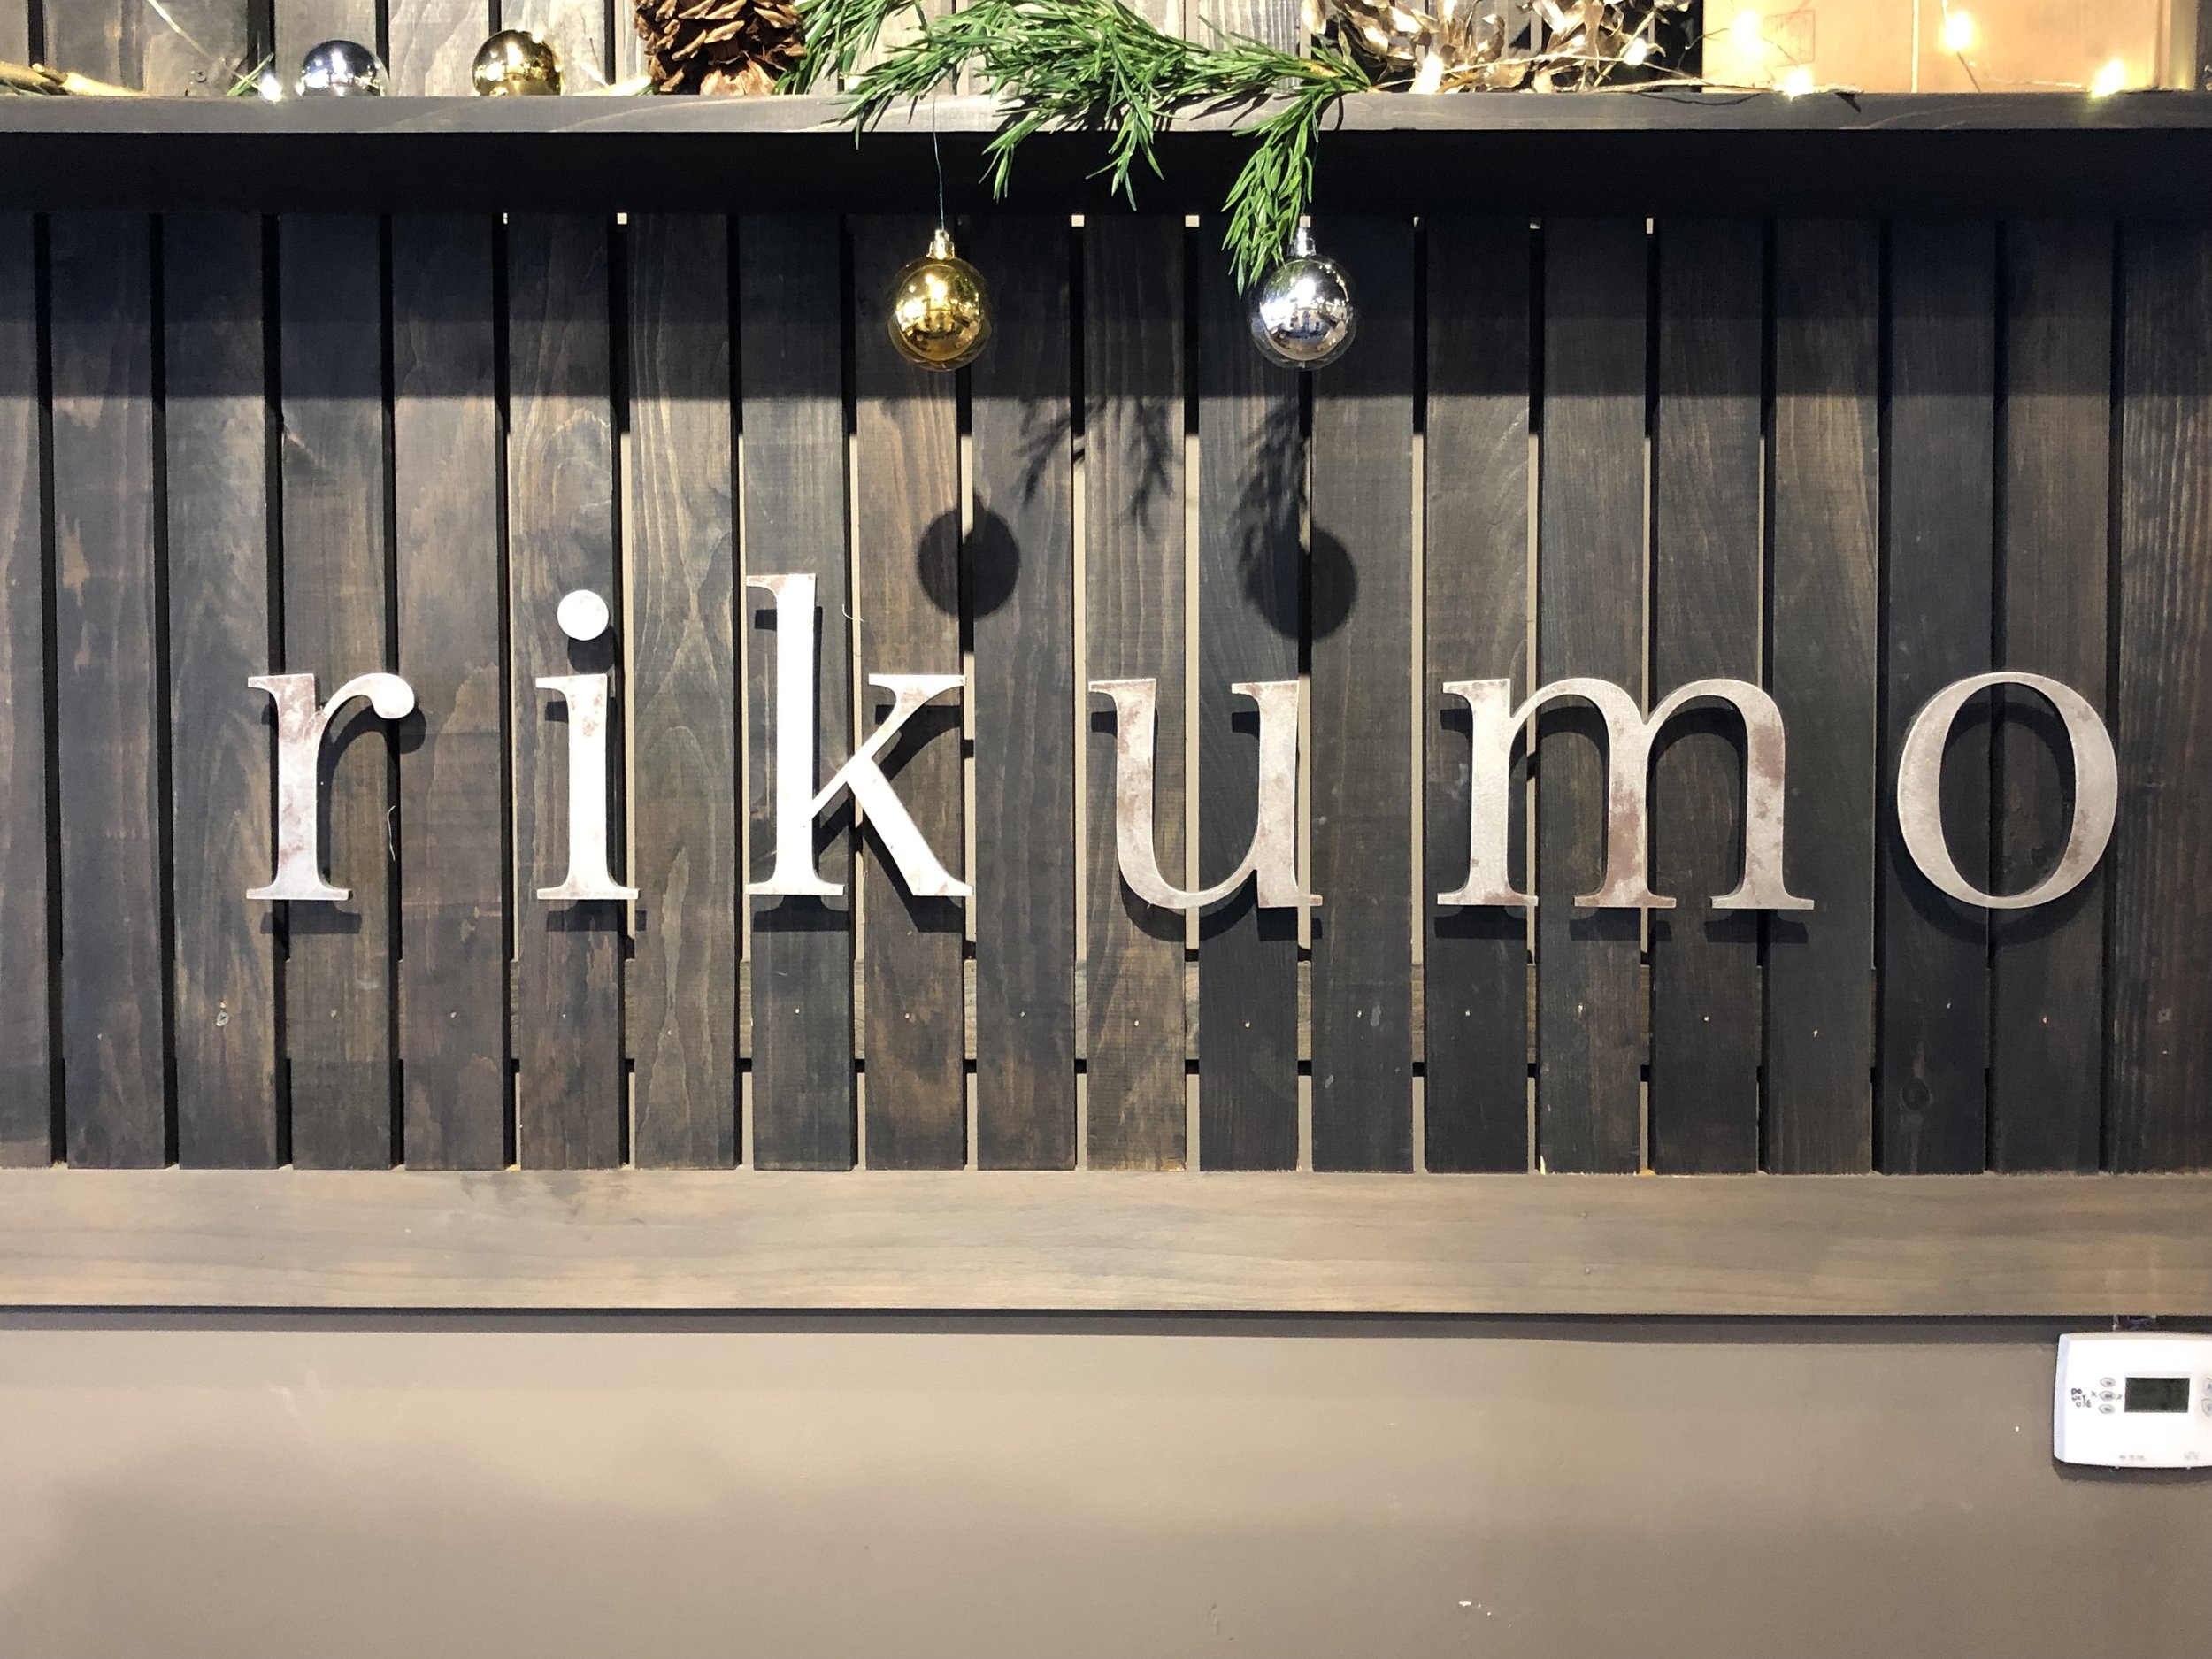 Rikumo's beautiful wood sign